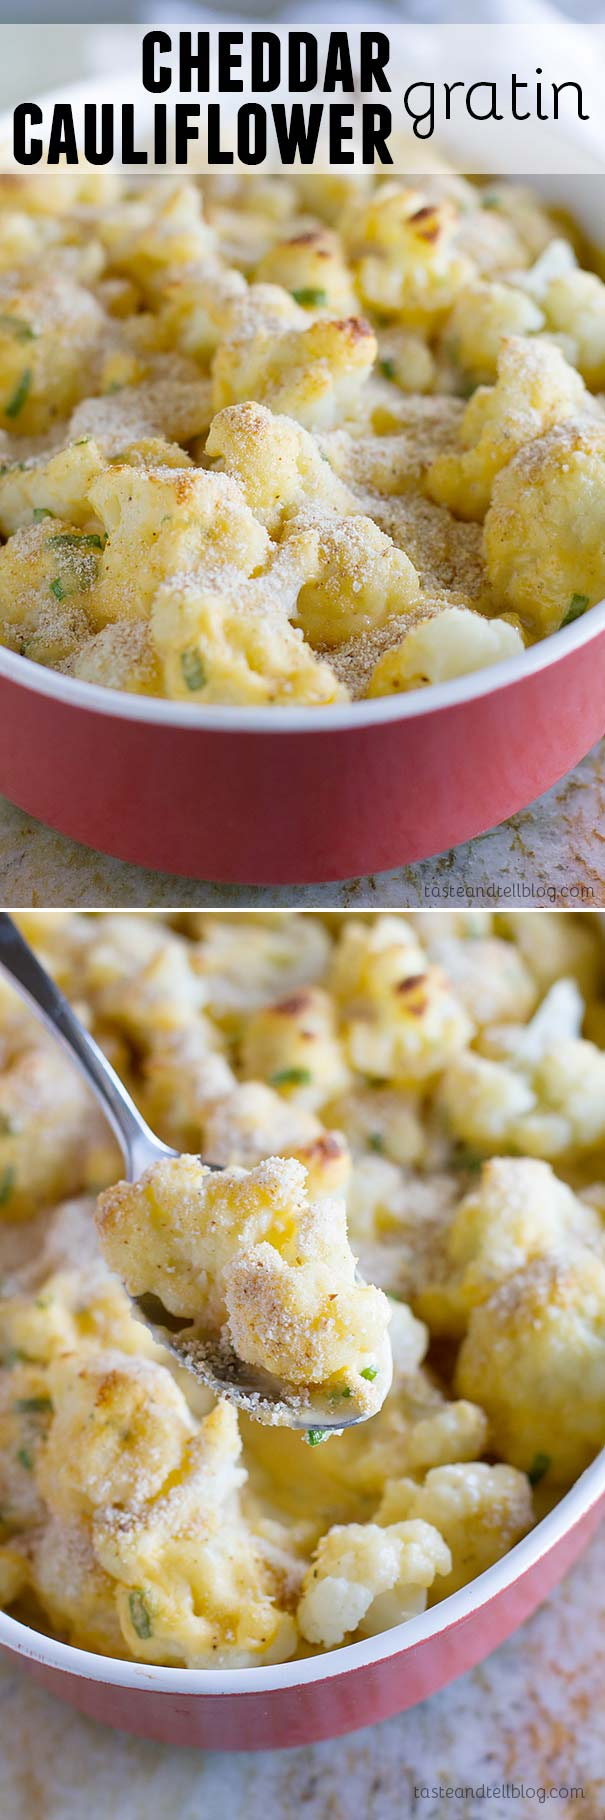 Who can resist cauliflower covered in a cheese sauce?  This Cauliflower Gratin has cauliflower covered in a creamy cheese sauce then sprinkled with breadcrumbs and baked for a veggie side dish everyone will love.